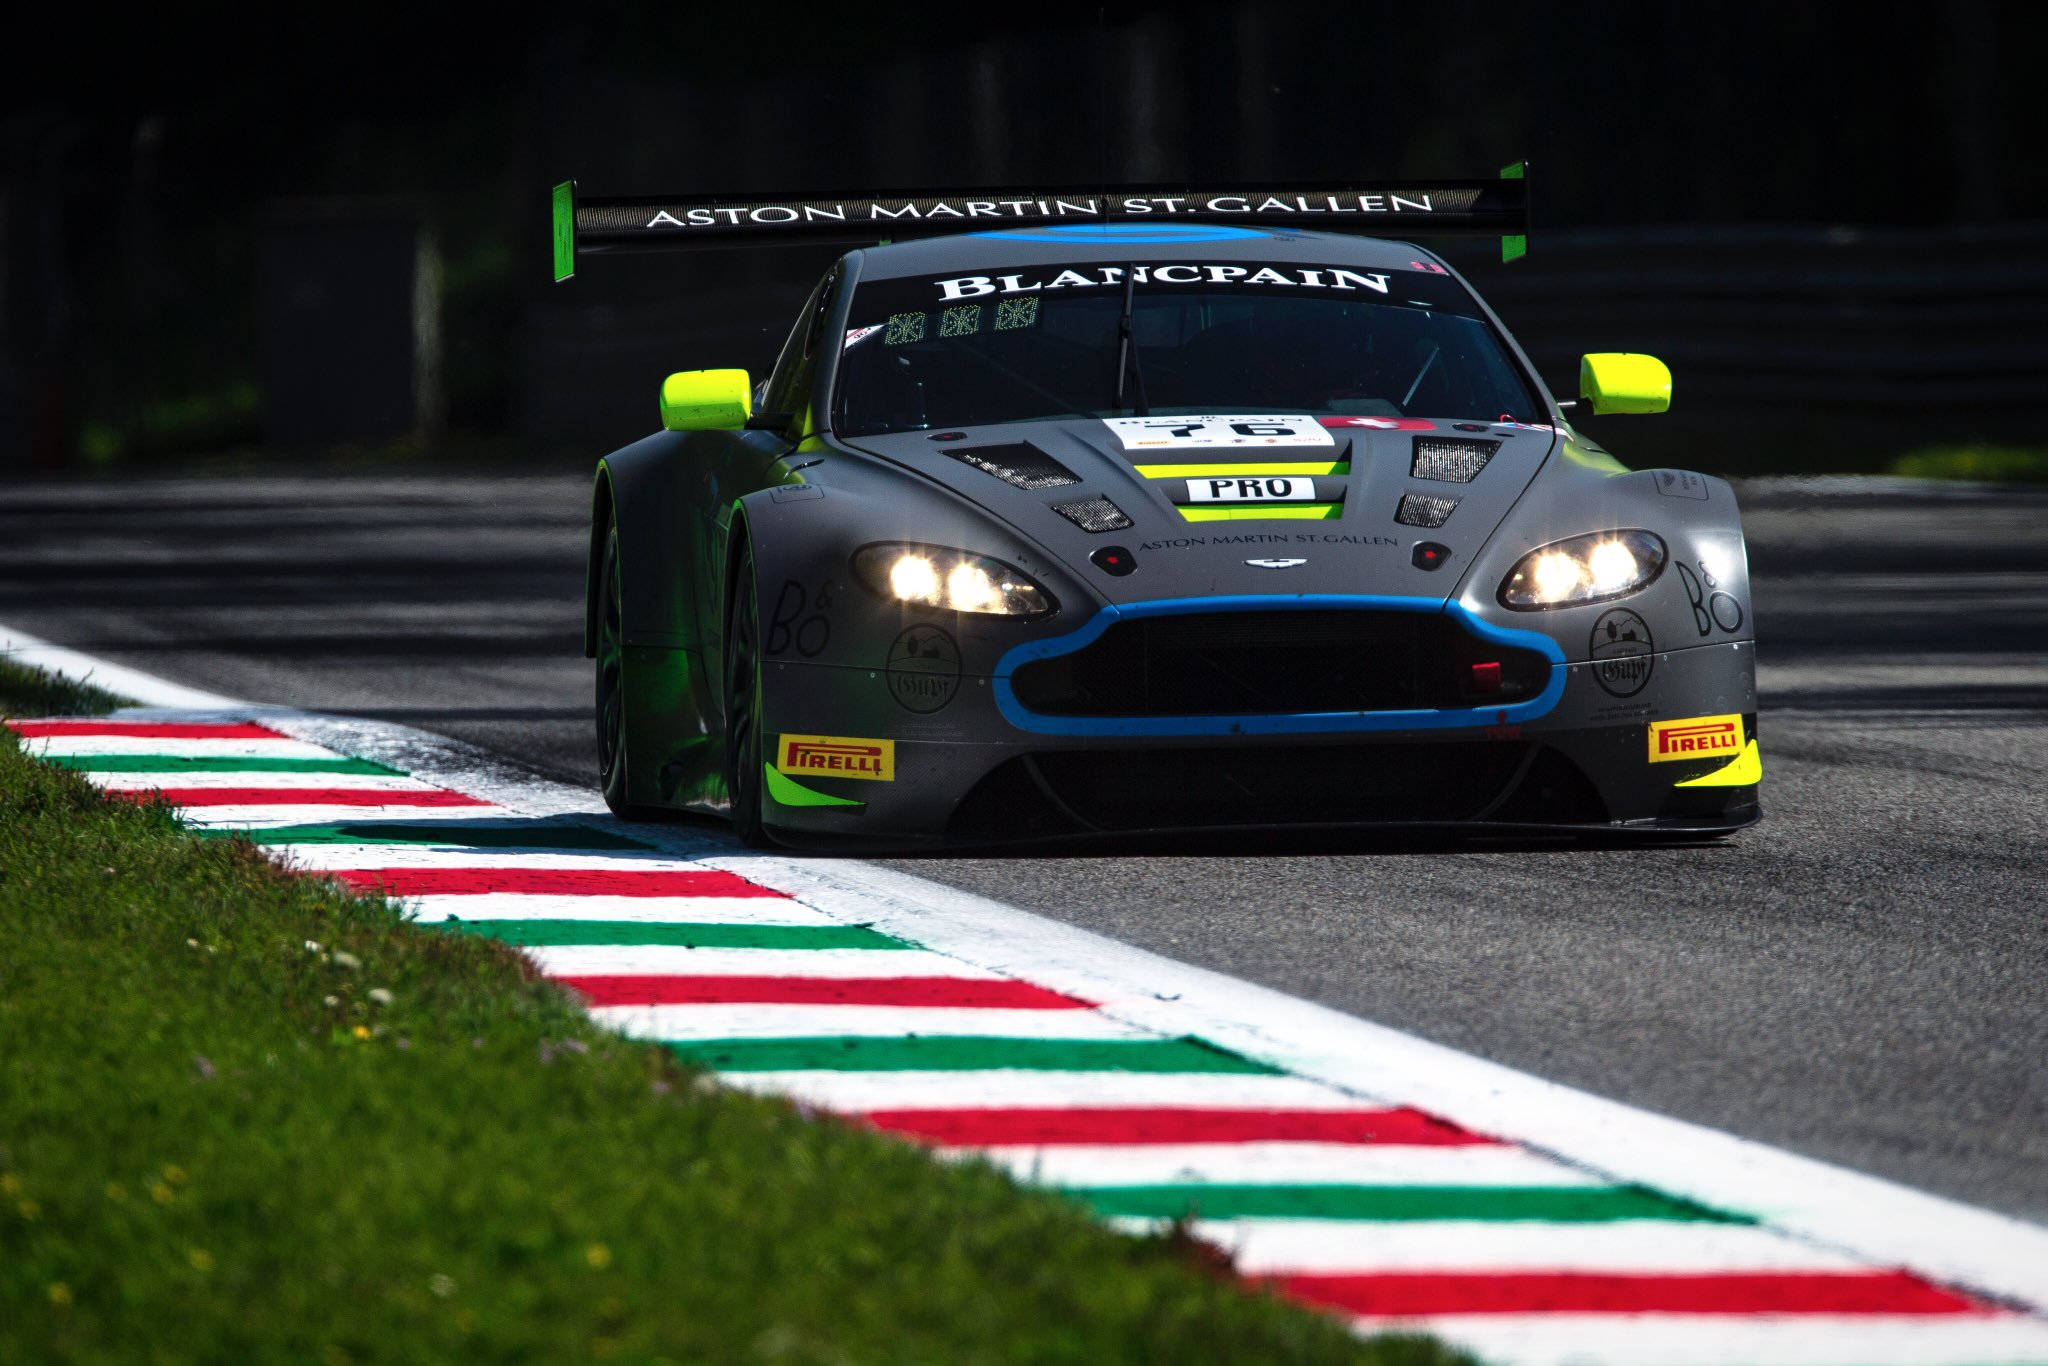 Dennis Makes Aston R Motorsport Switch For The 2018 Season Home Gt Switches 4 Way Jake Earns A 9th Place Finish With At 24 Hours Of Spa